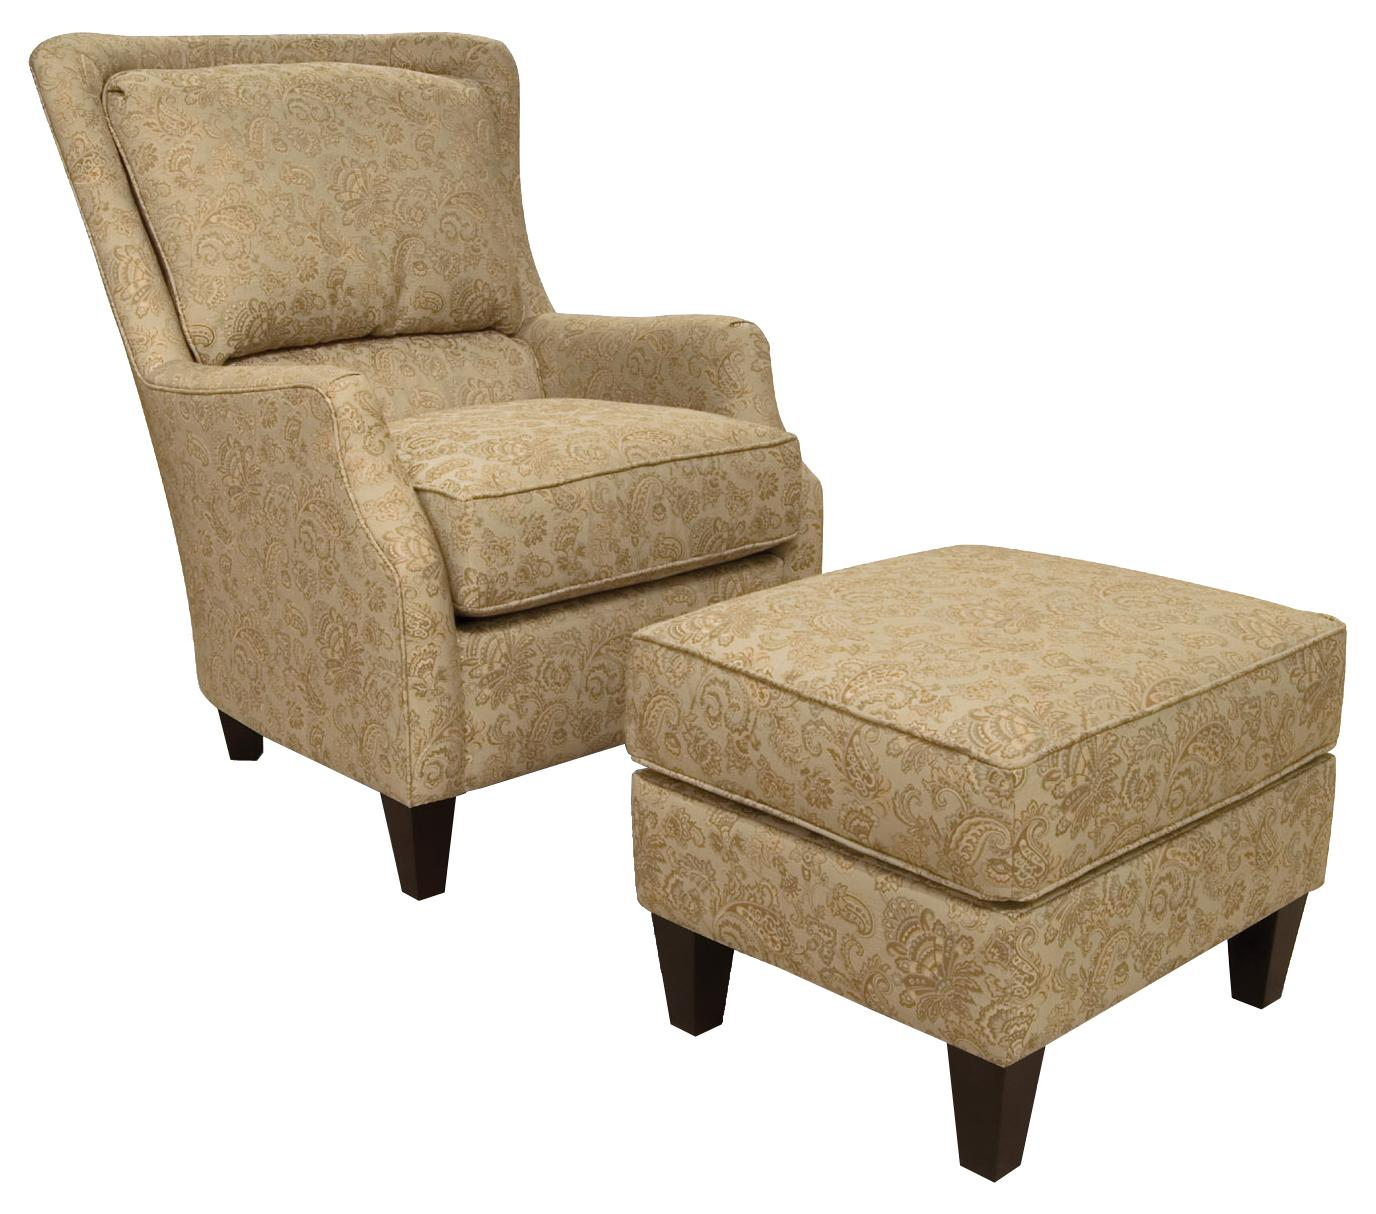 England Loren Chair and Ottoman - Item Number: Loren 2 PC